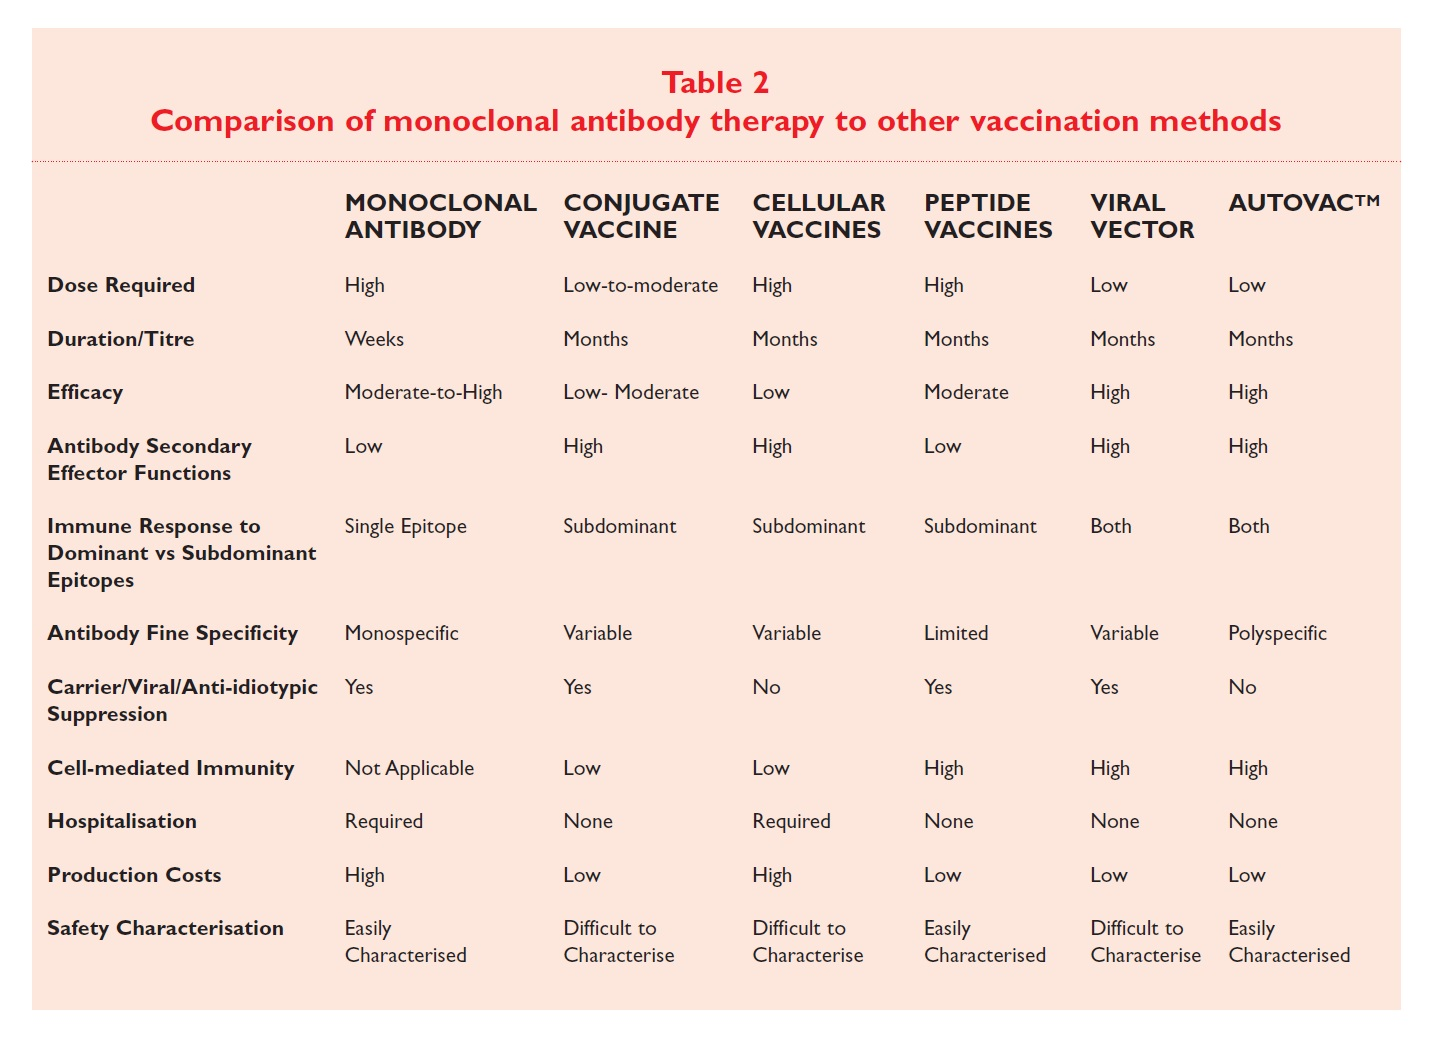 Table 2 Comparison of monoclonal antibody therapy to other vaccination methods